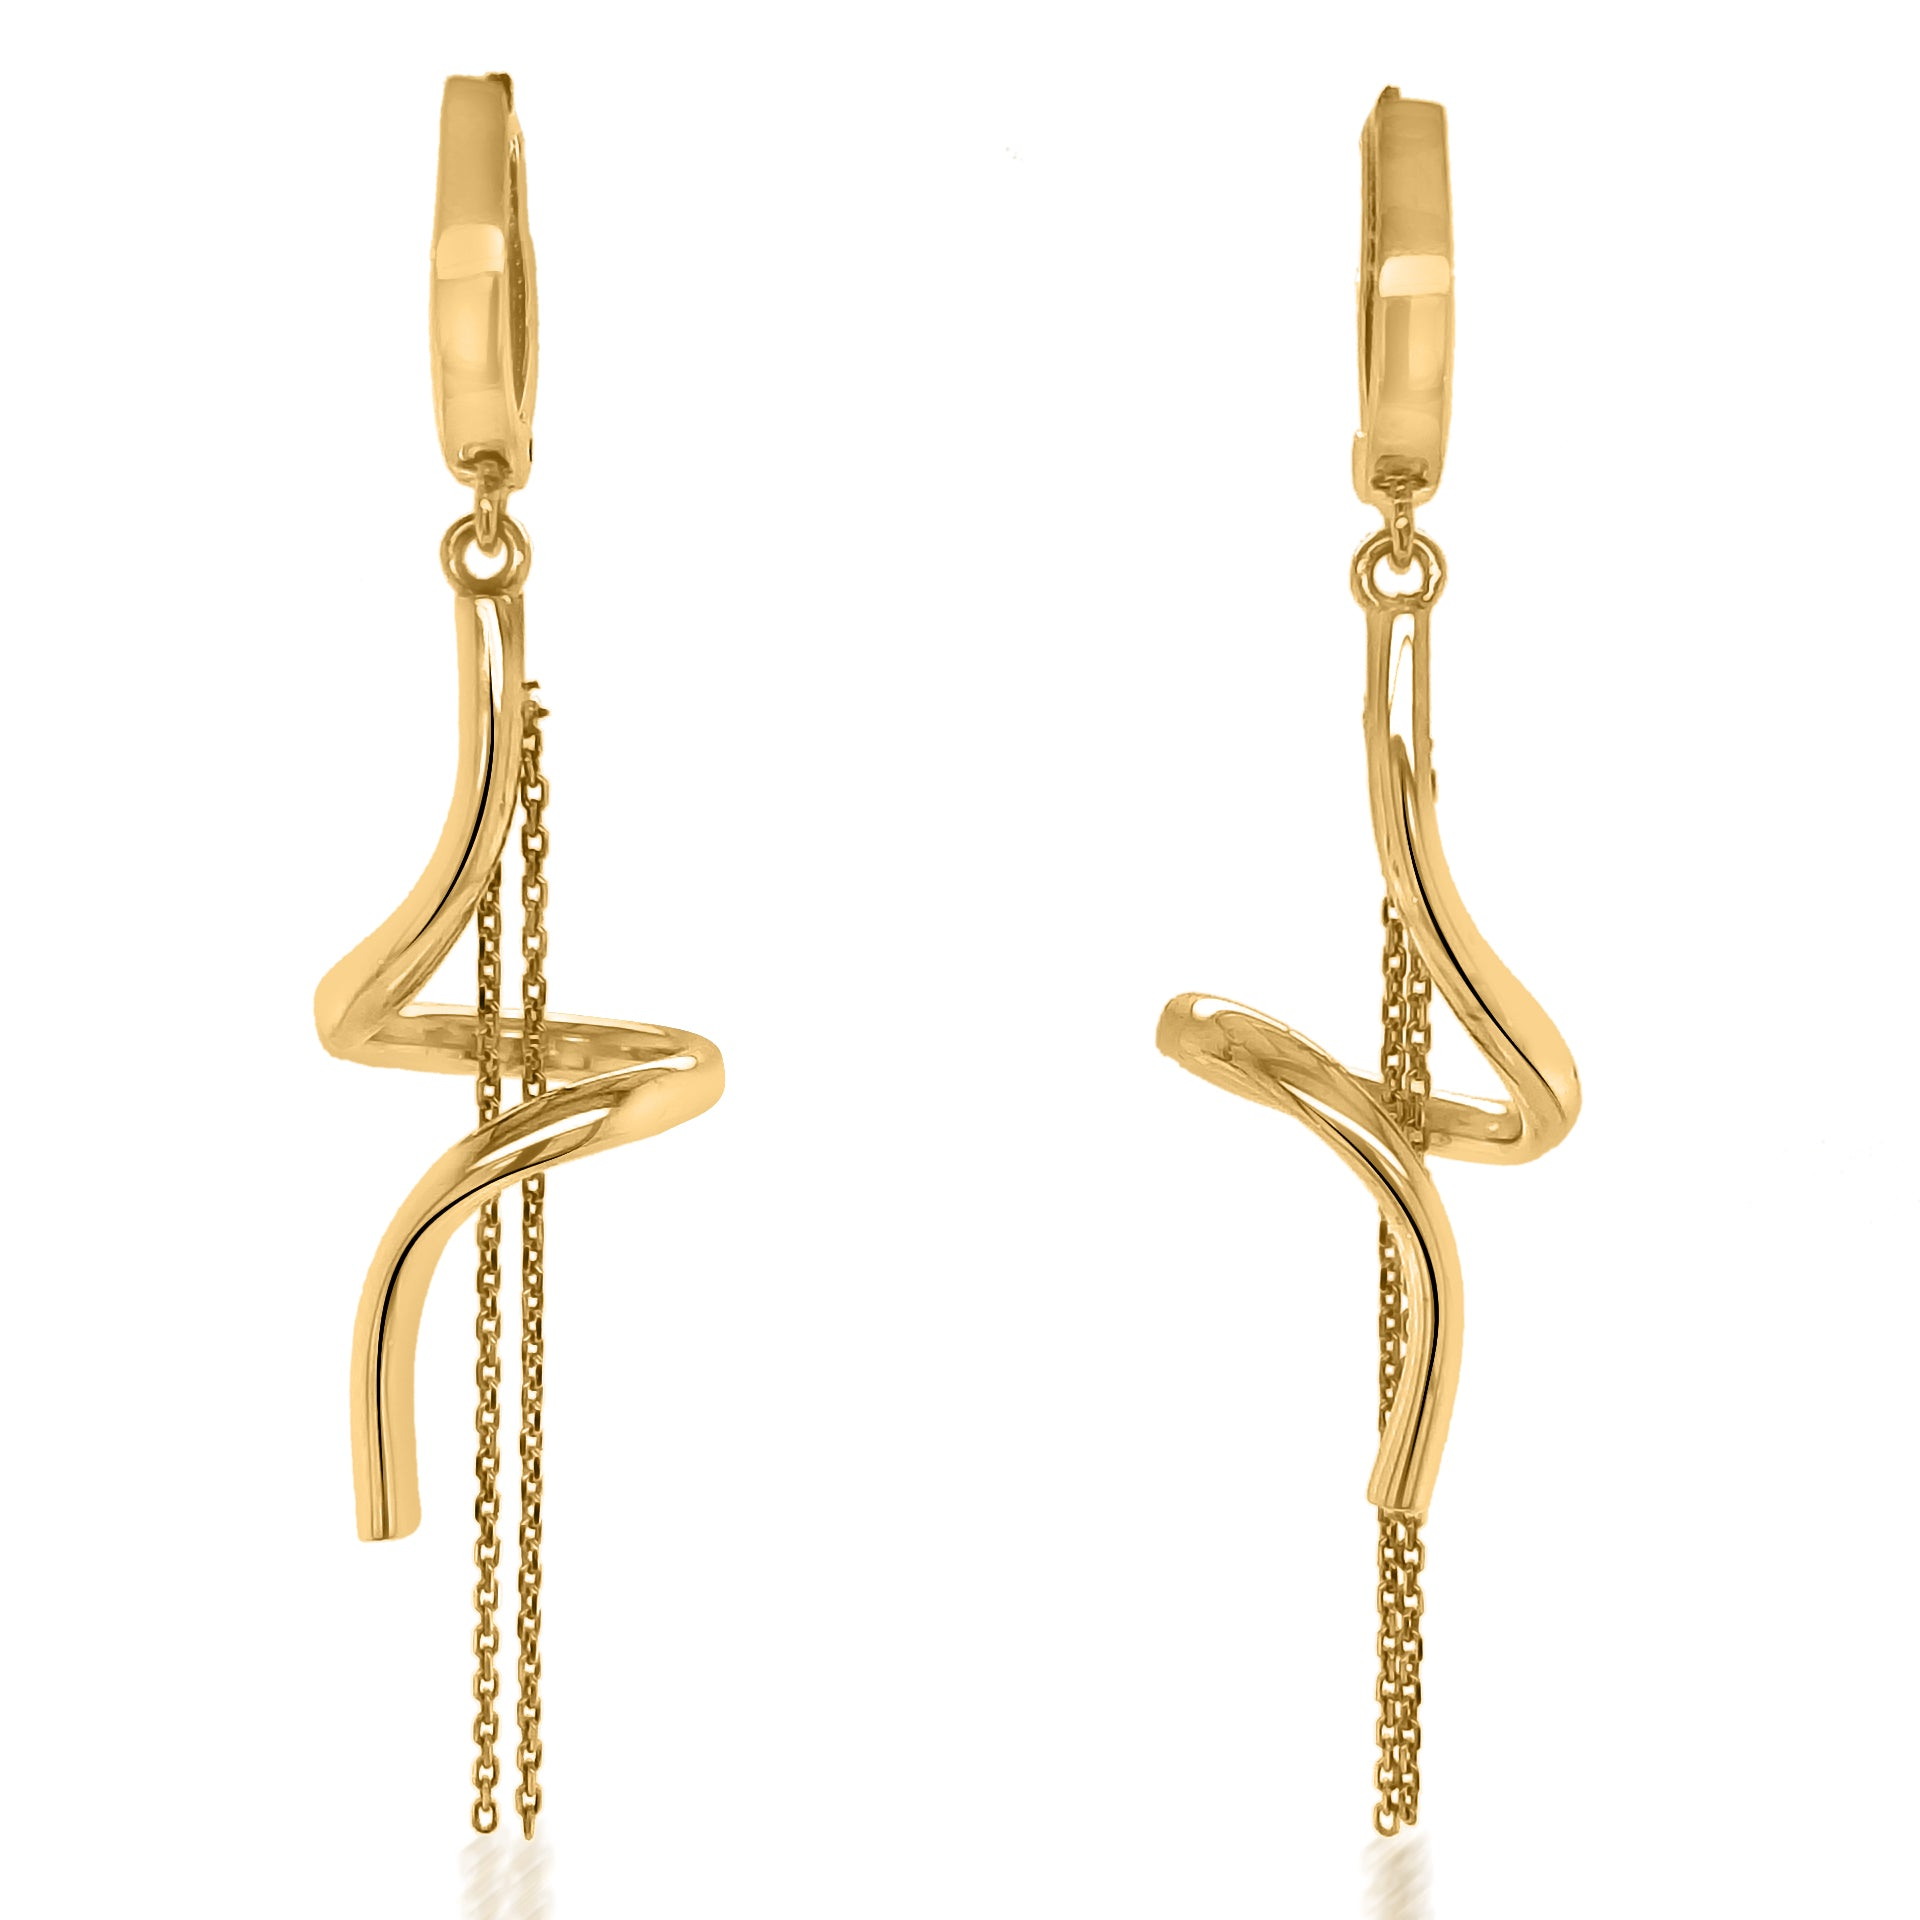 18K Gold Helix Earrings - Lueur Jewelry